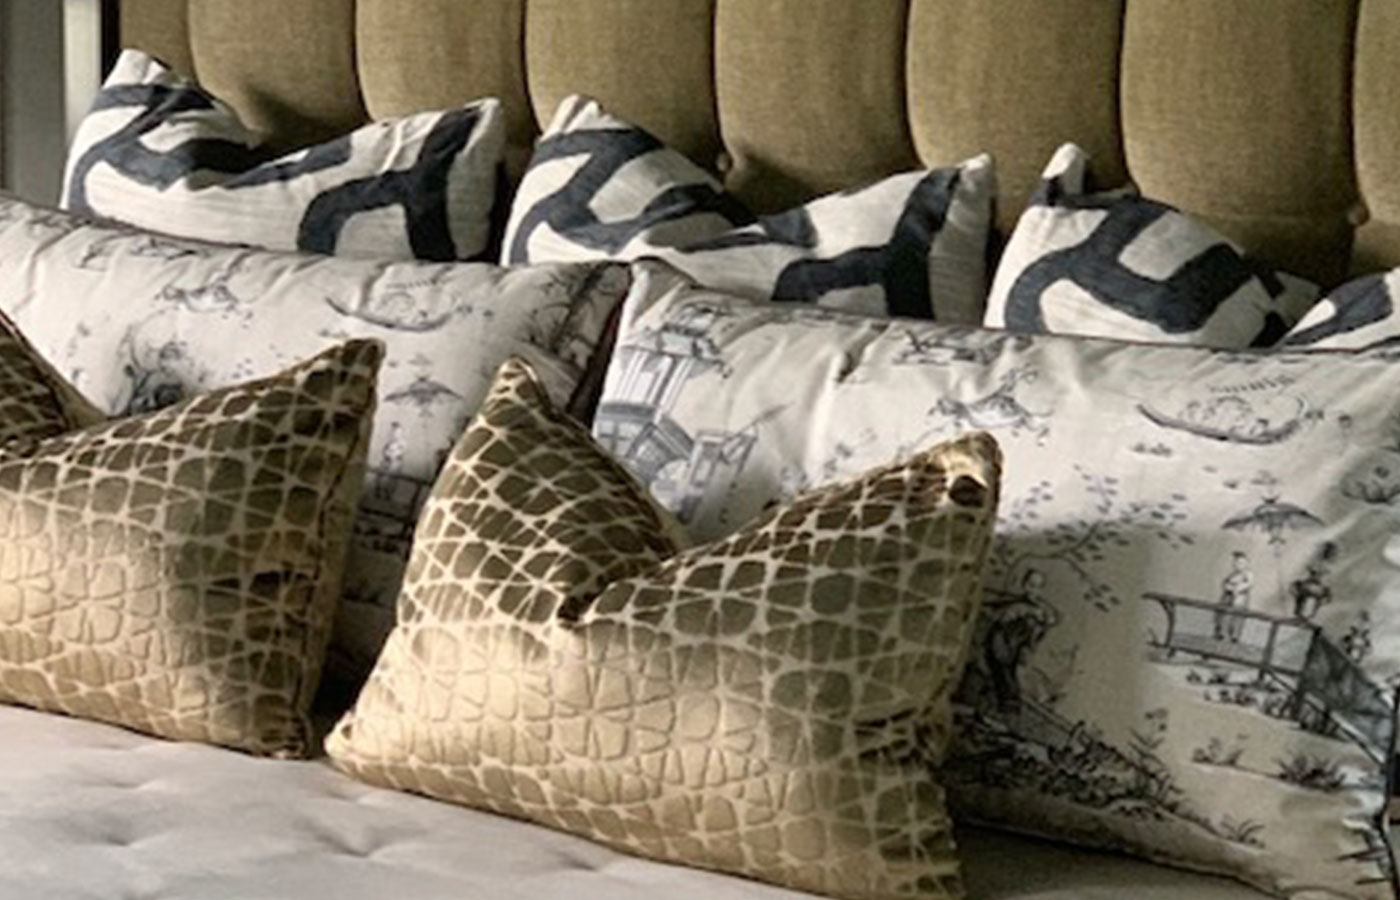 decorative pillows on modern bedding